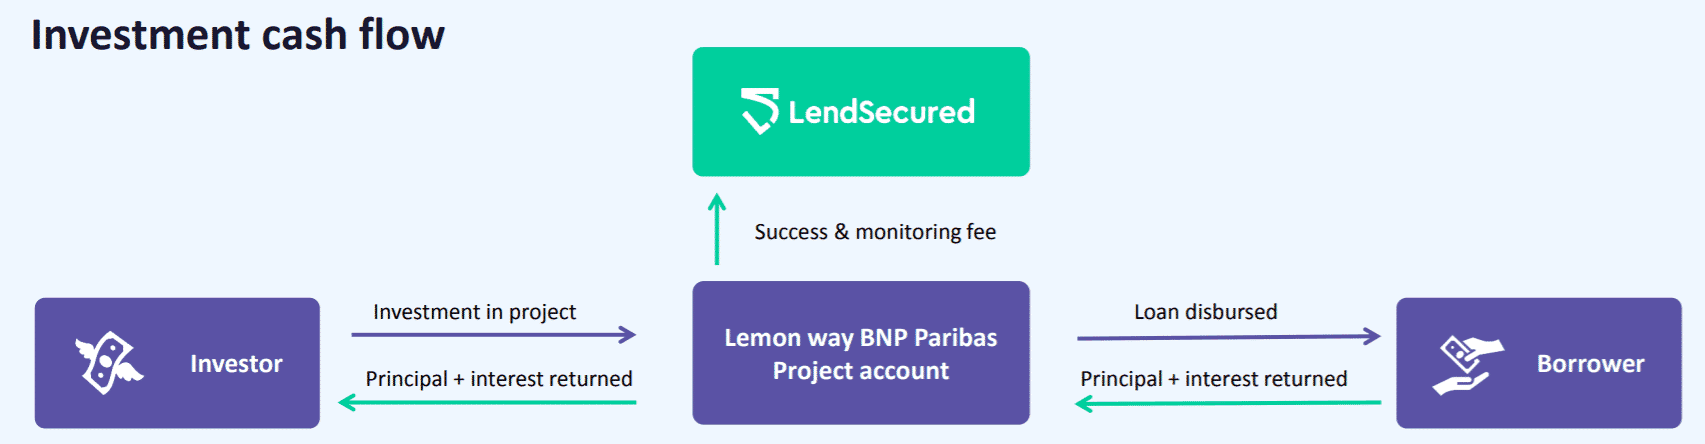 lendsecured cashflow